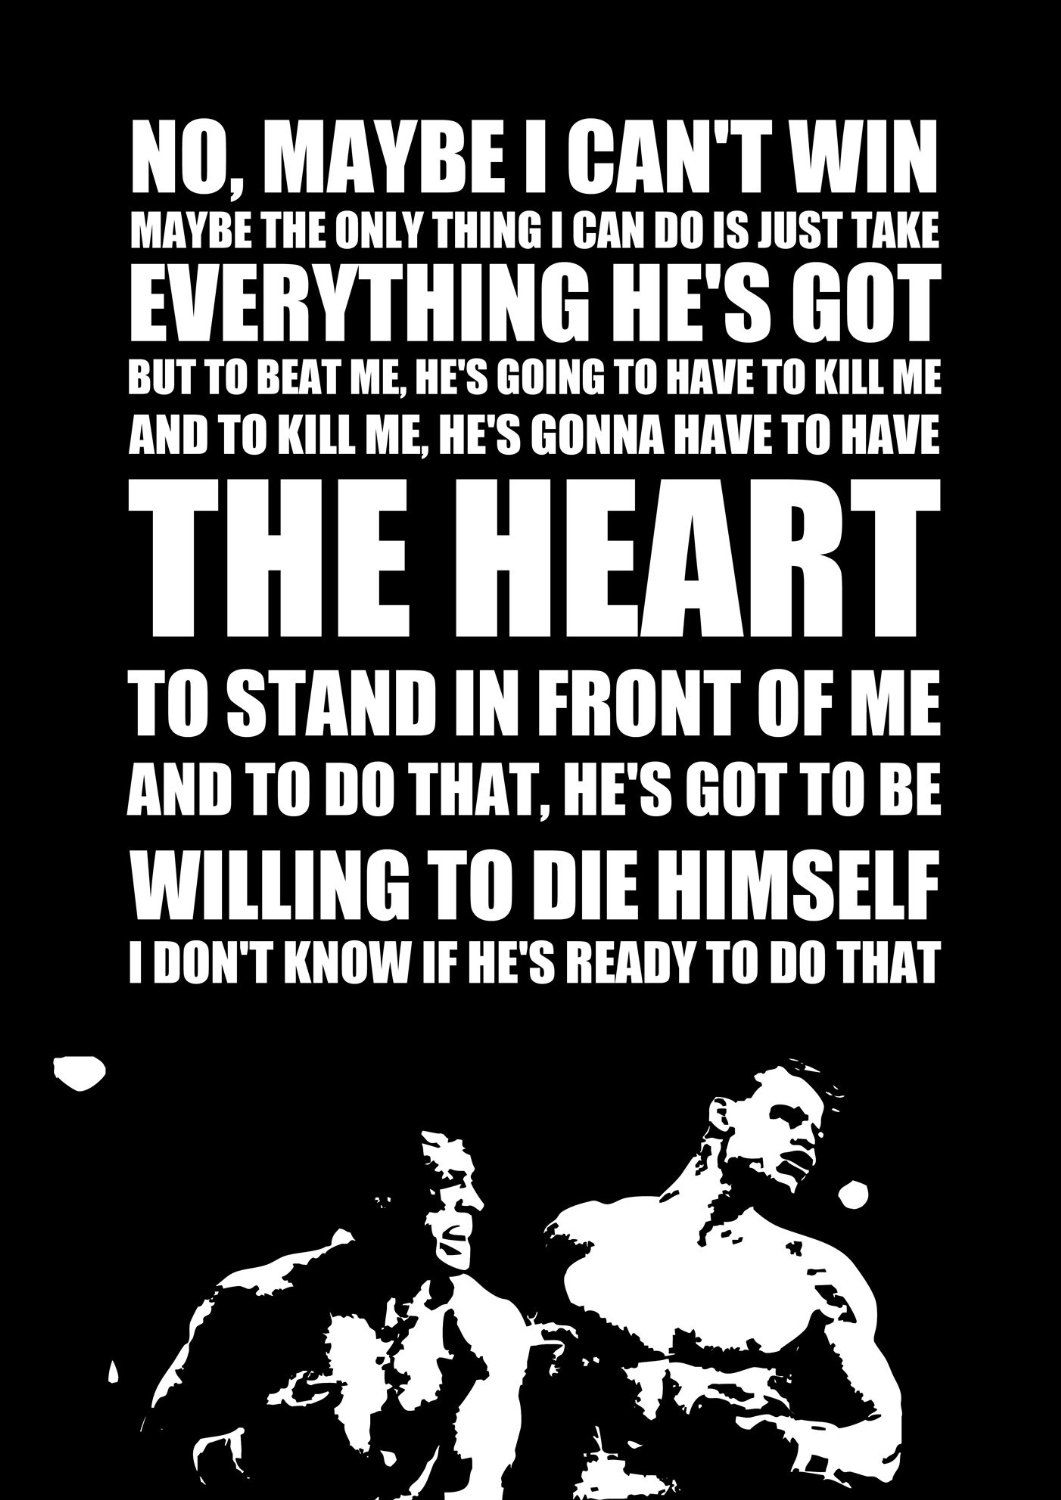 Rocky Quote Rocky 4 Inspired Motivational Inspirational Quote Poster A3 Amazon .